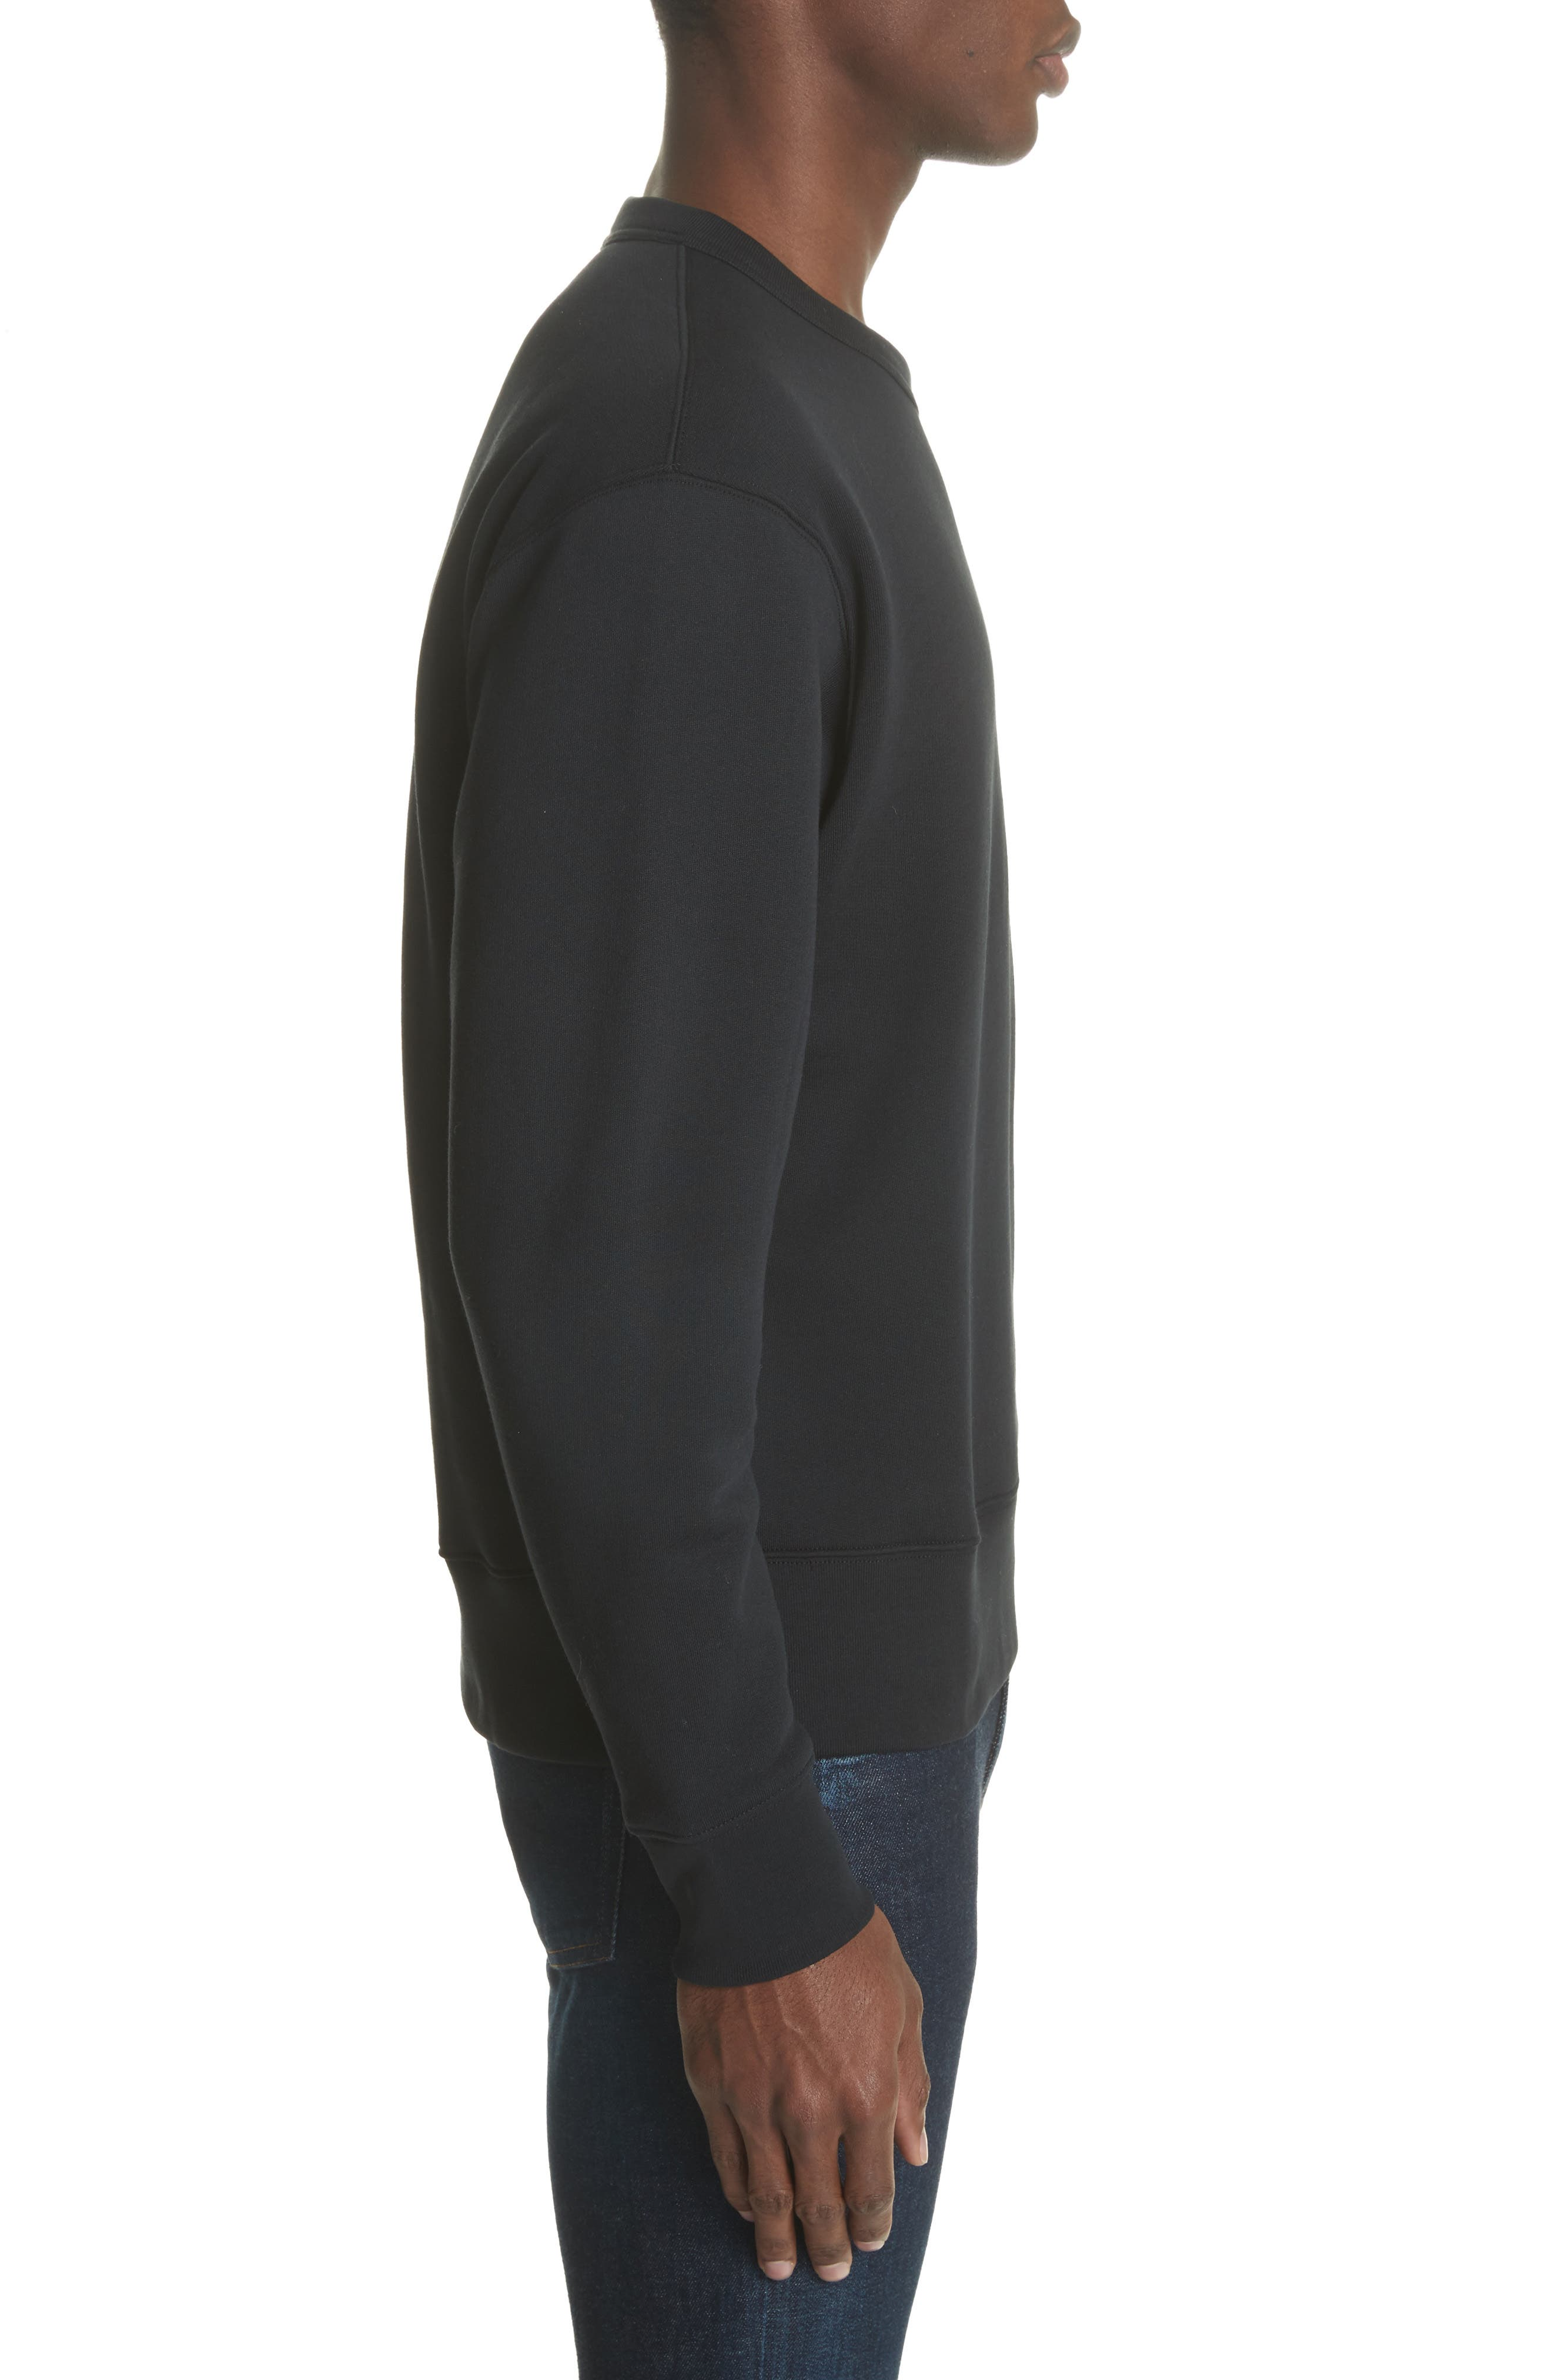 ACNE STUDIOS, Fairview Face Crewneck Sweatshirt, Alternate thumbnail 3, color, BLACK